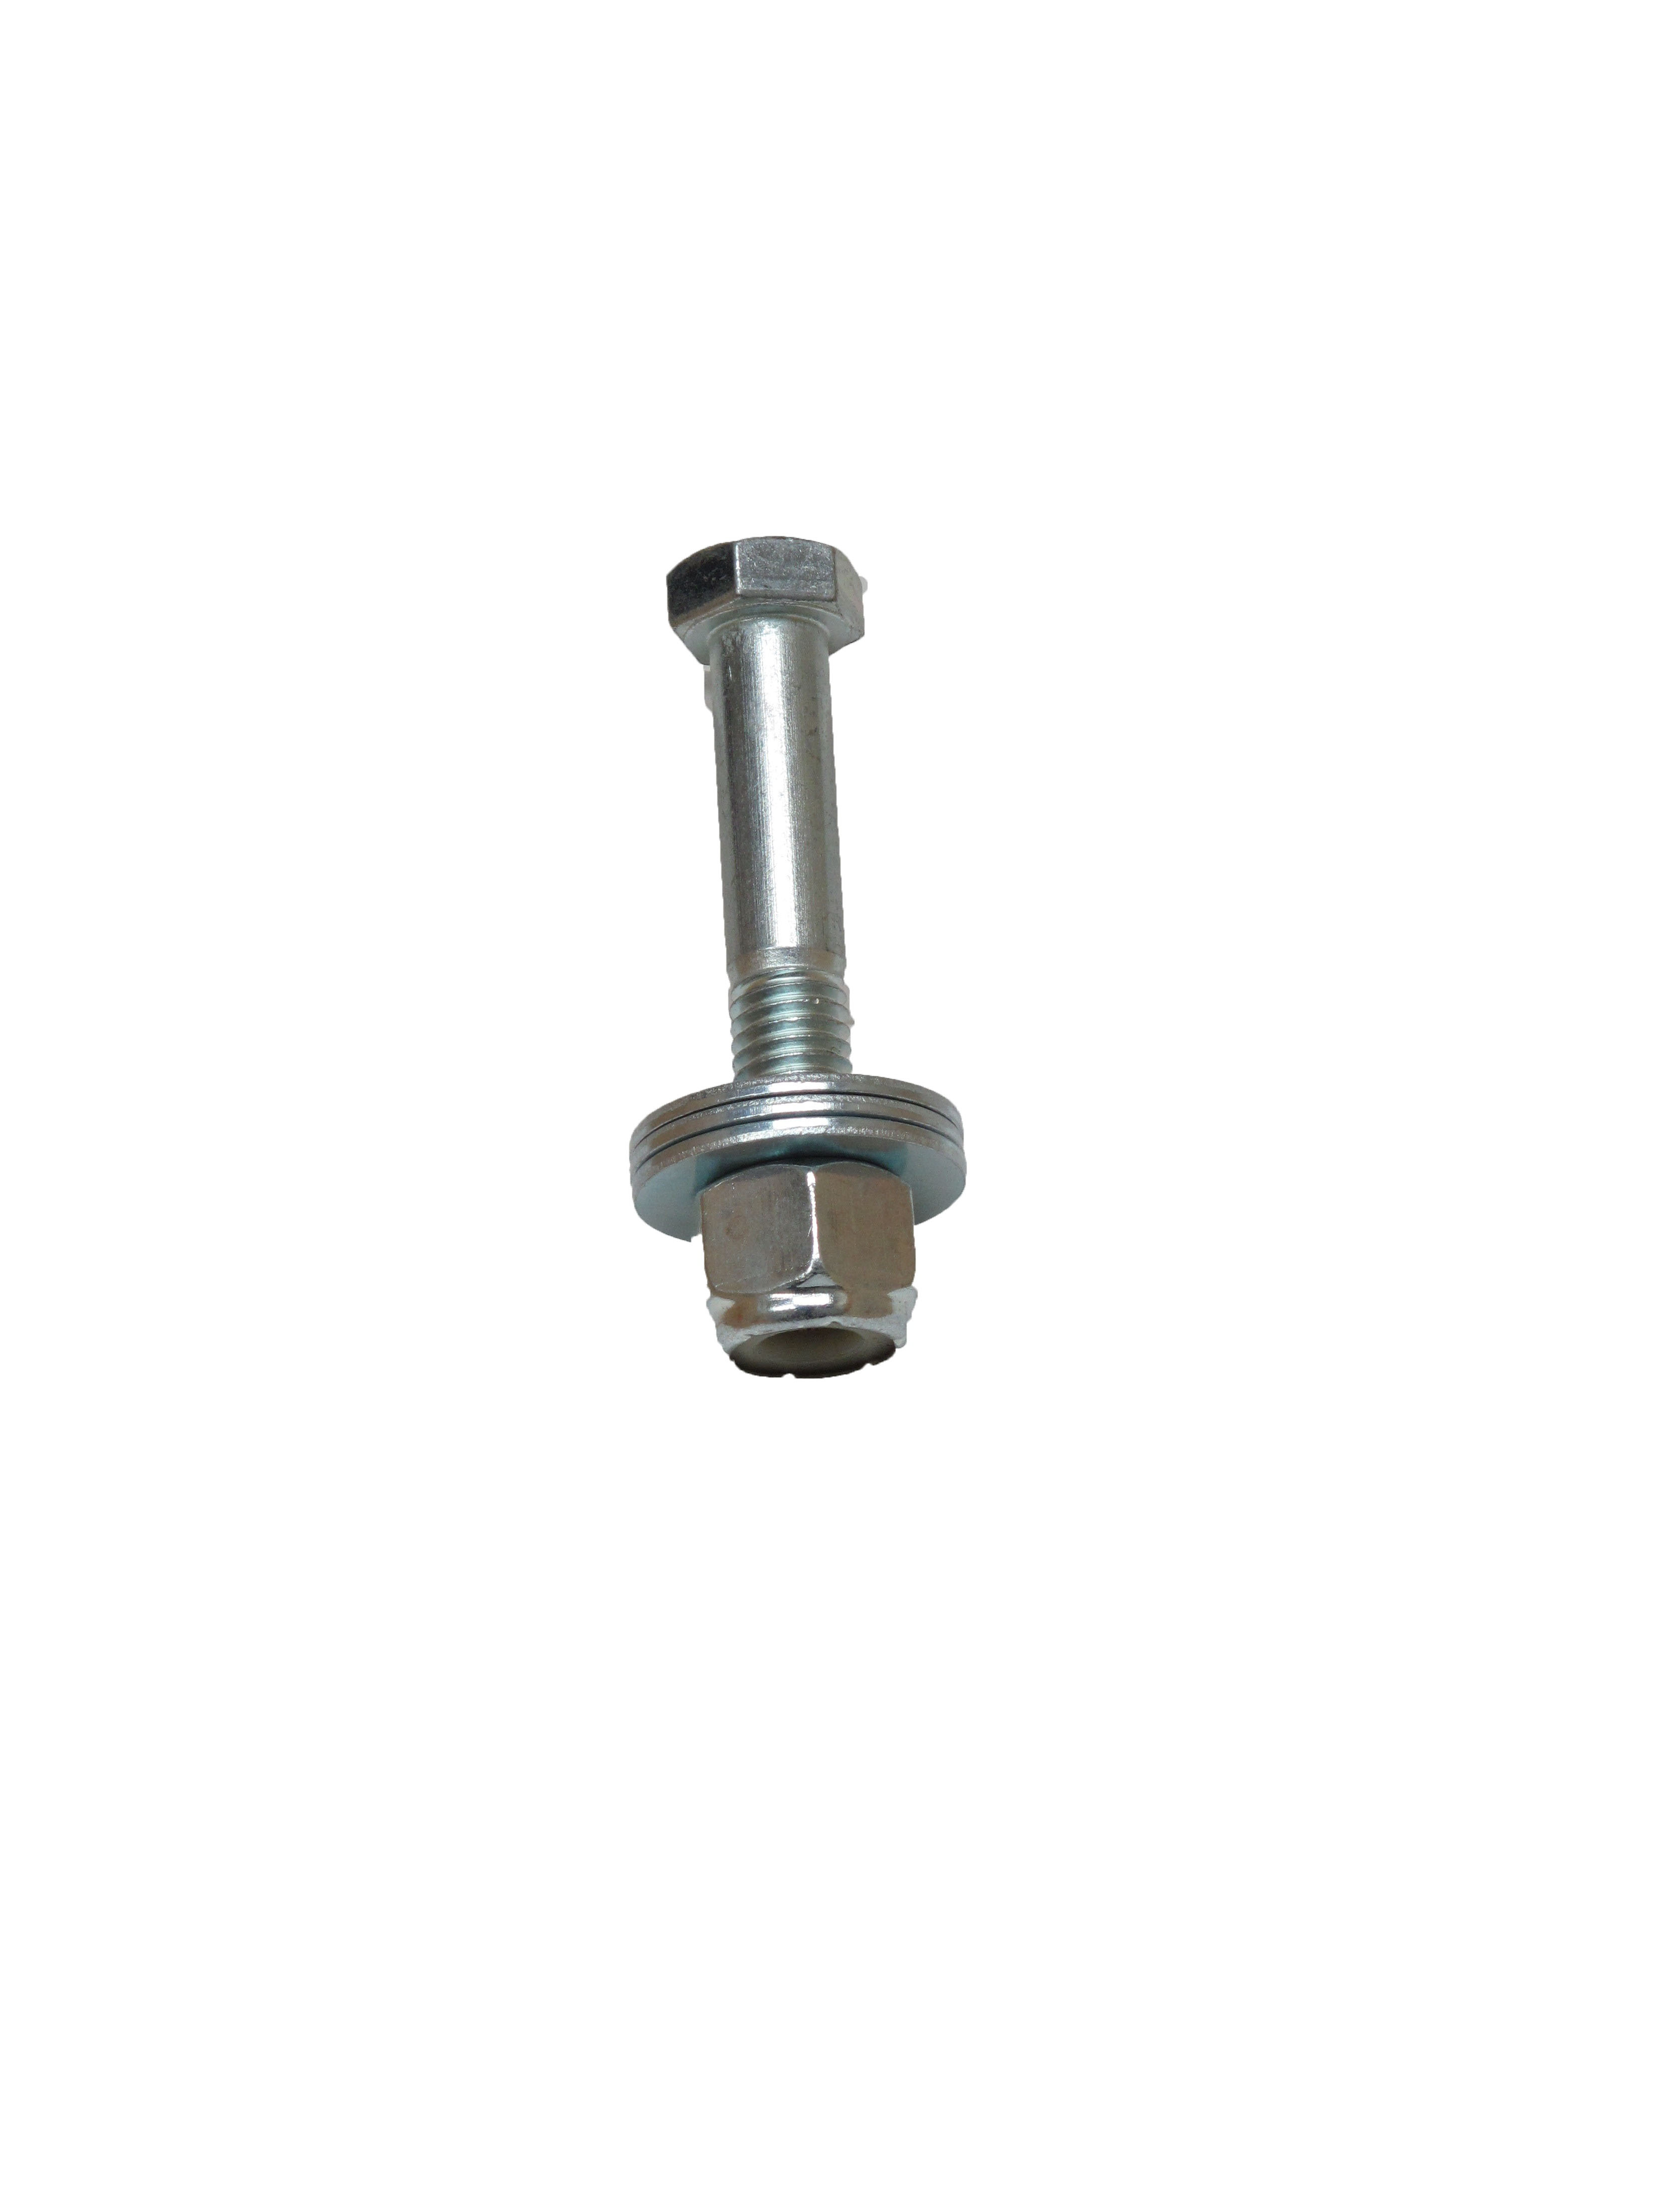 STEM BOLT FOR V-1000X